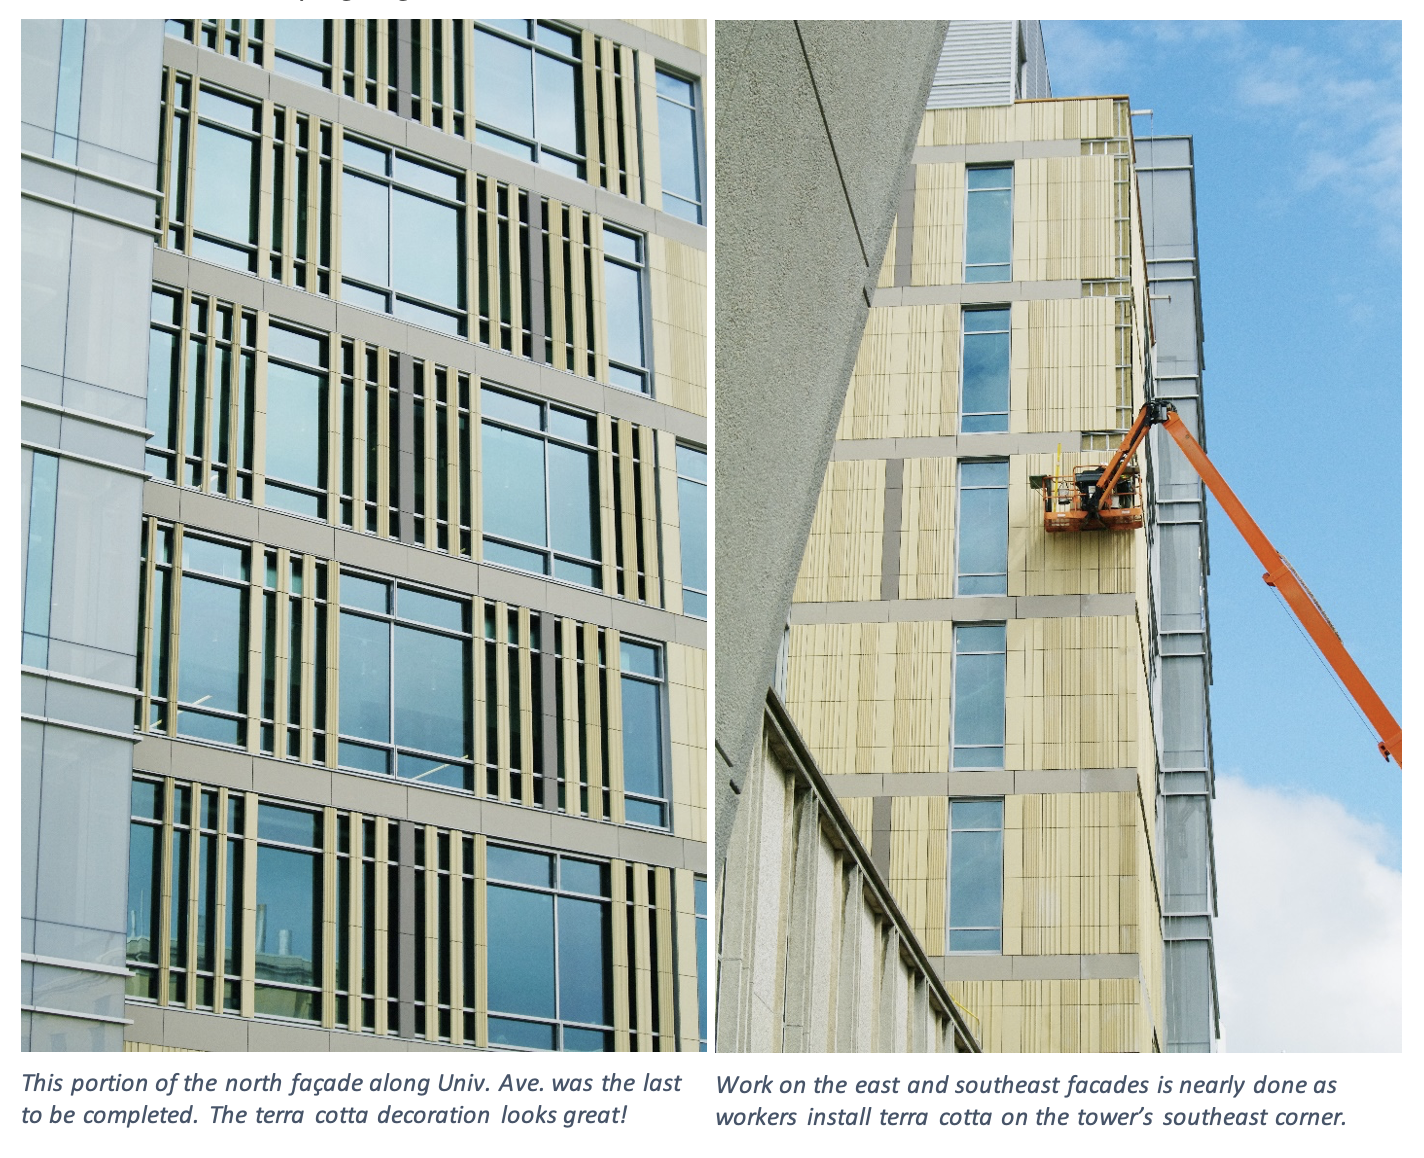 Work on the east and southeast facades is nearly done as workers install terra cotta on the tower's southeast corner.